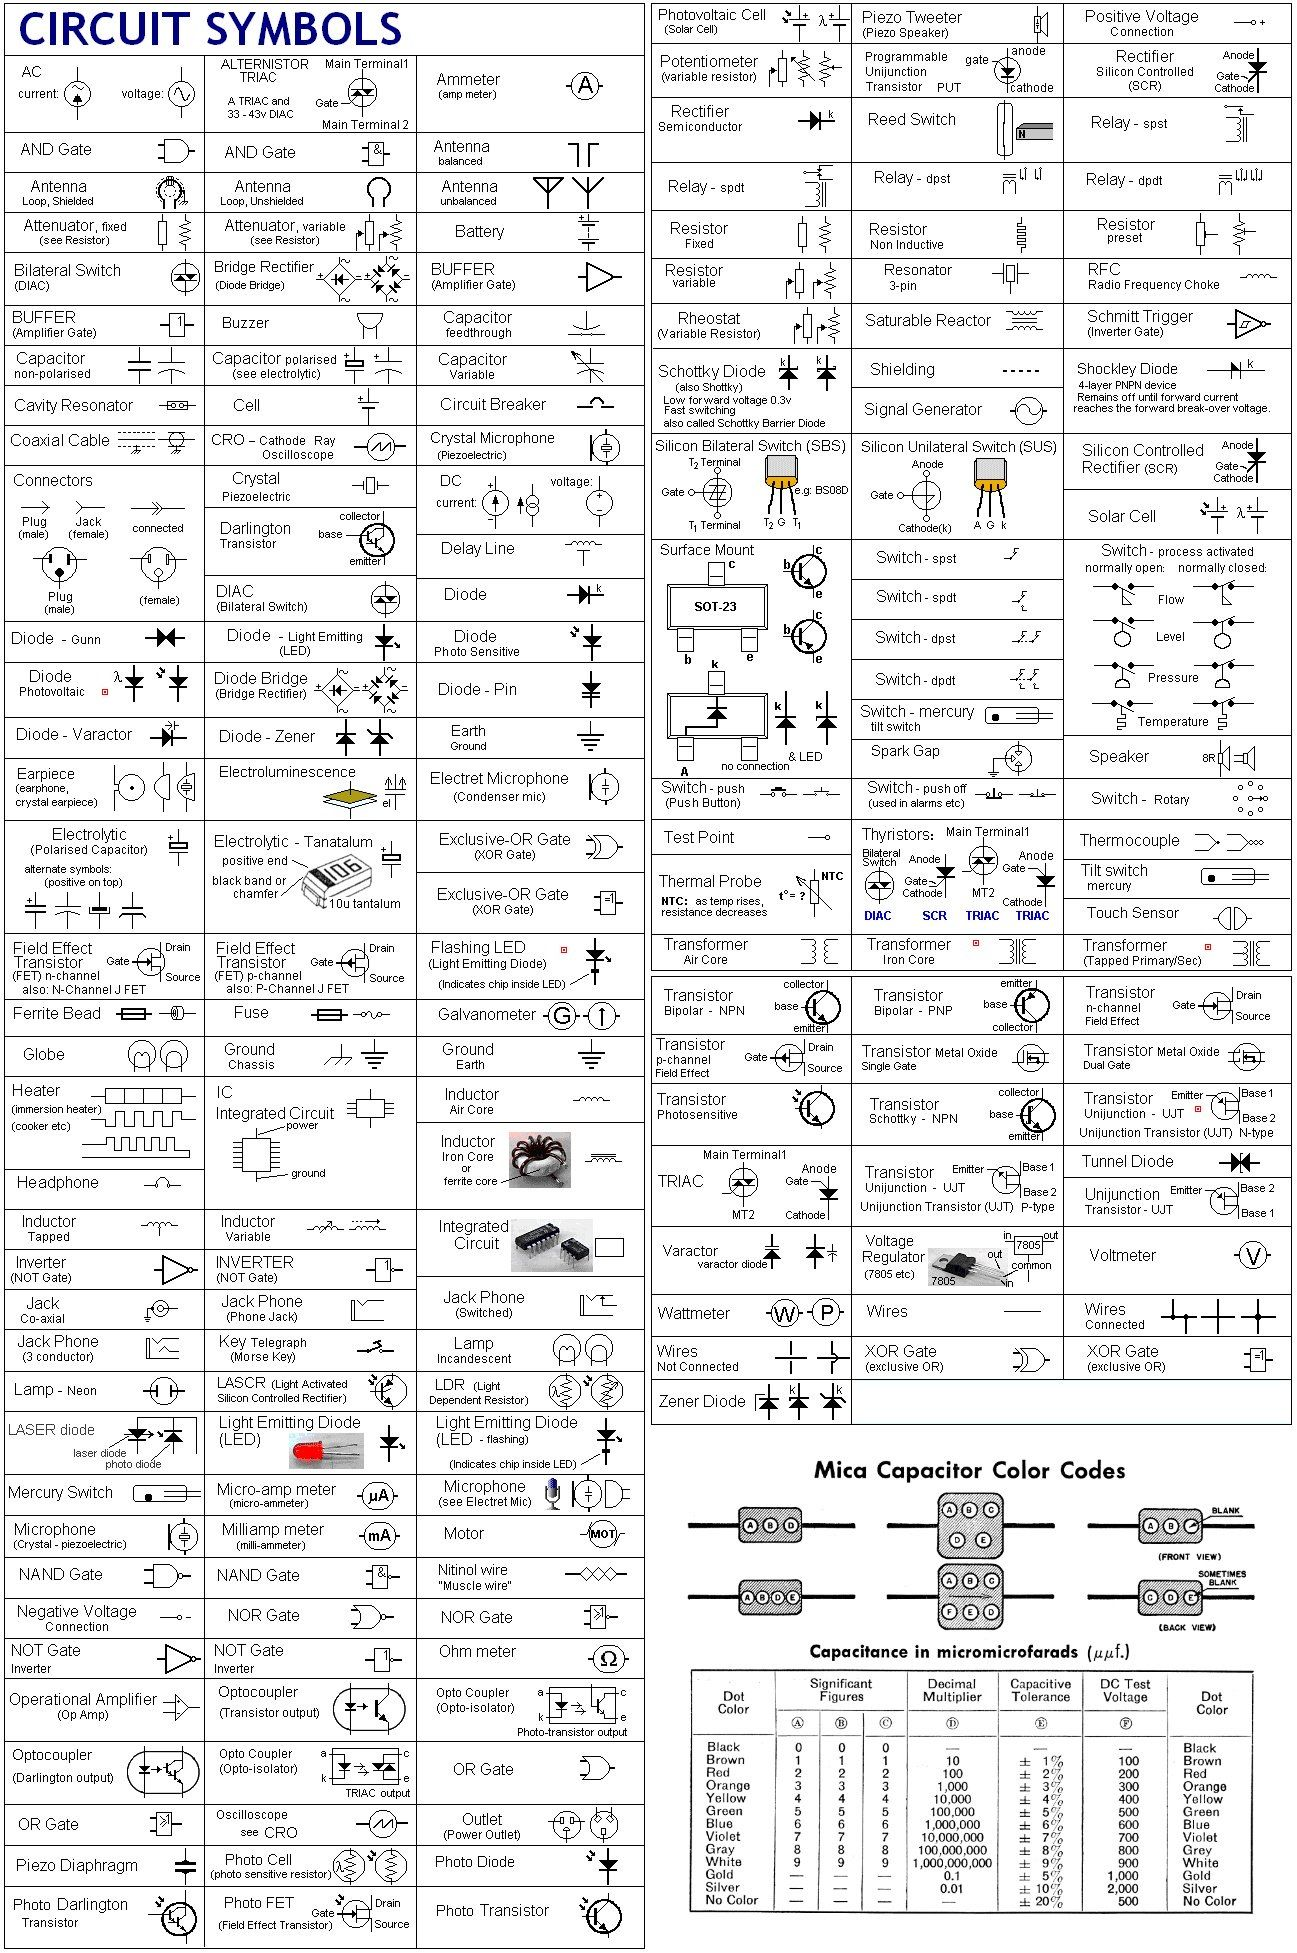 Electric circuit symbolsg 12971953 techie pinterest schematic symbols chart electric circuit symbols a considerably complete alphabetized table asfbconference2016 Image collections